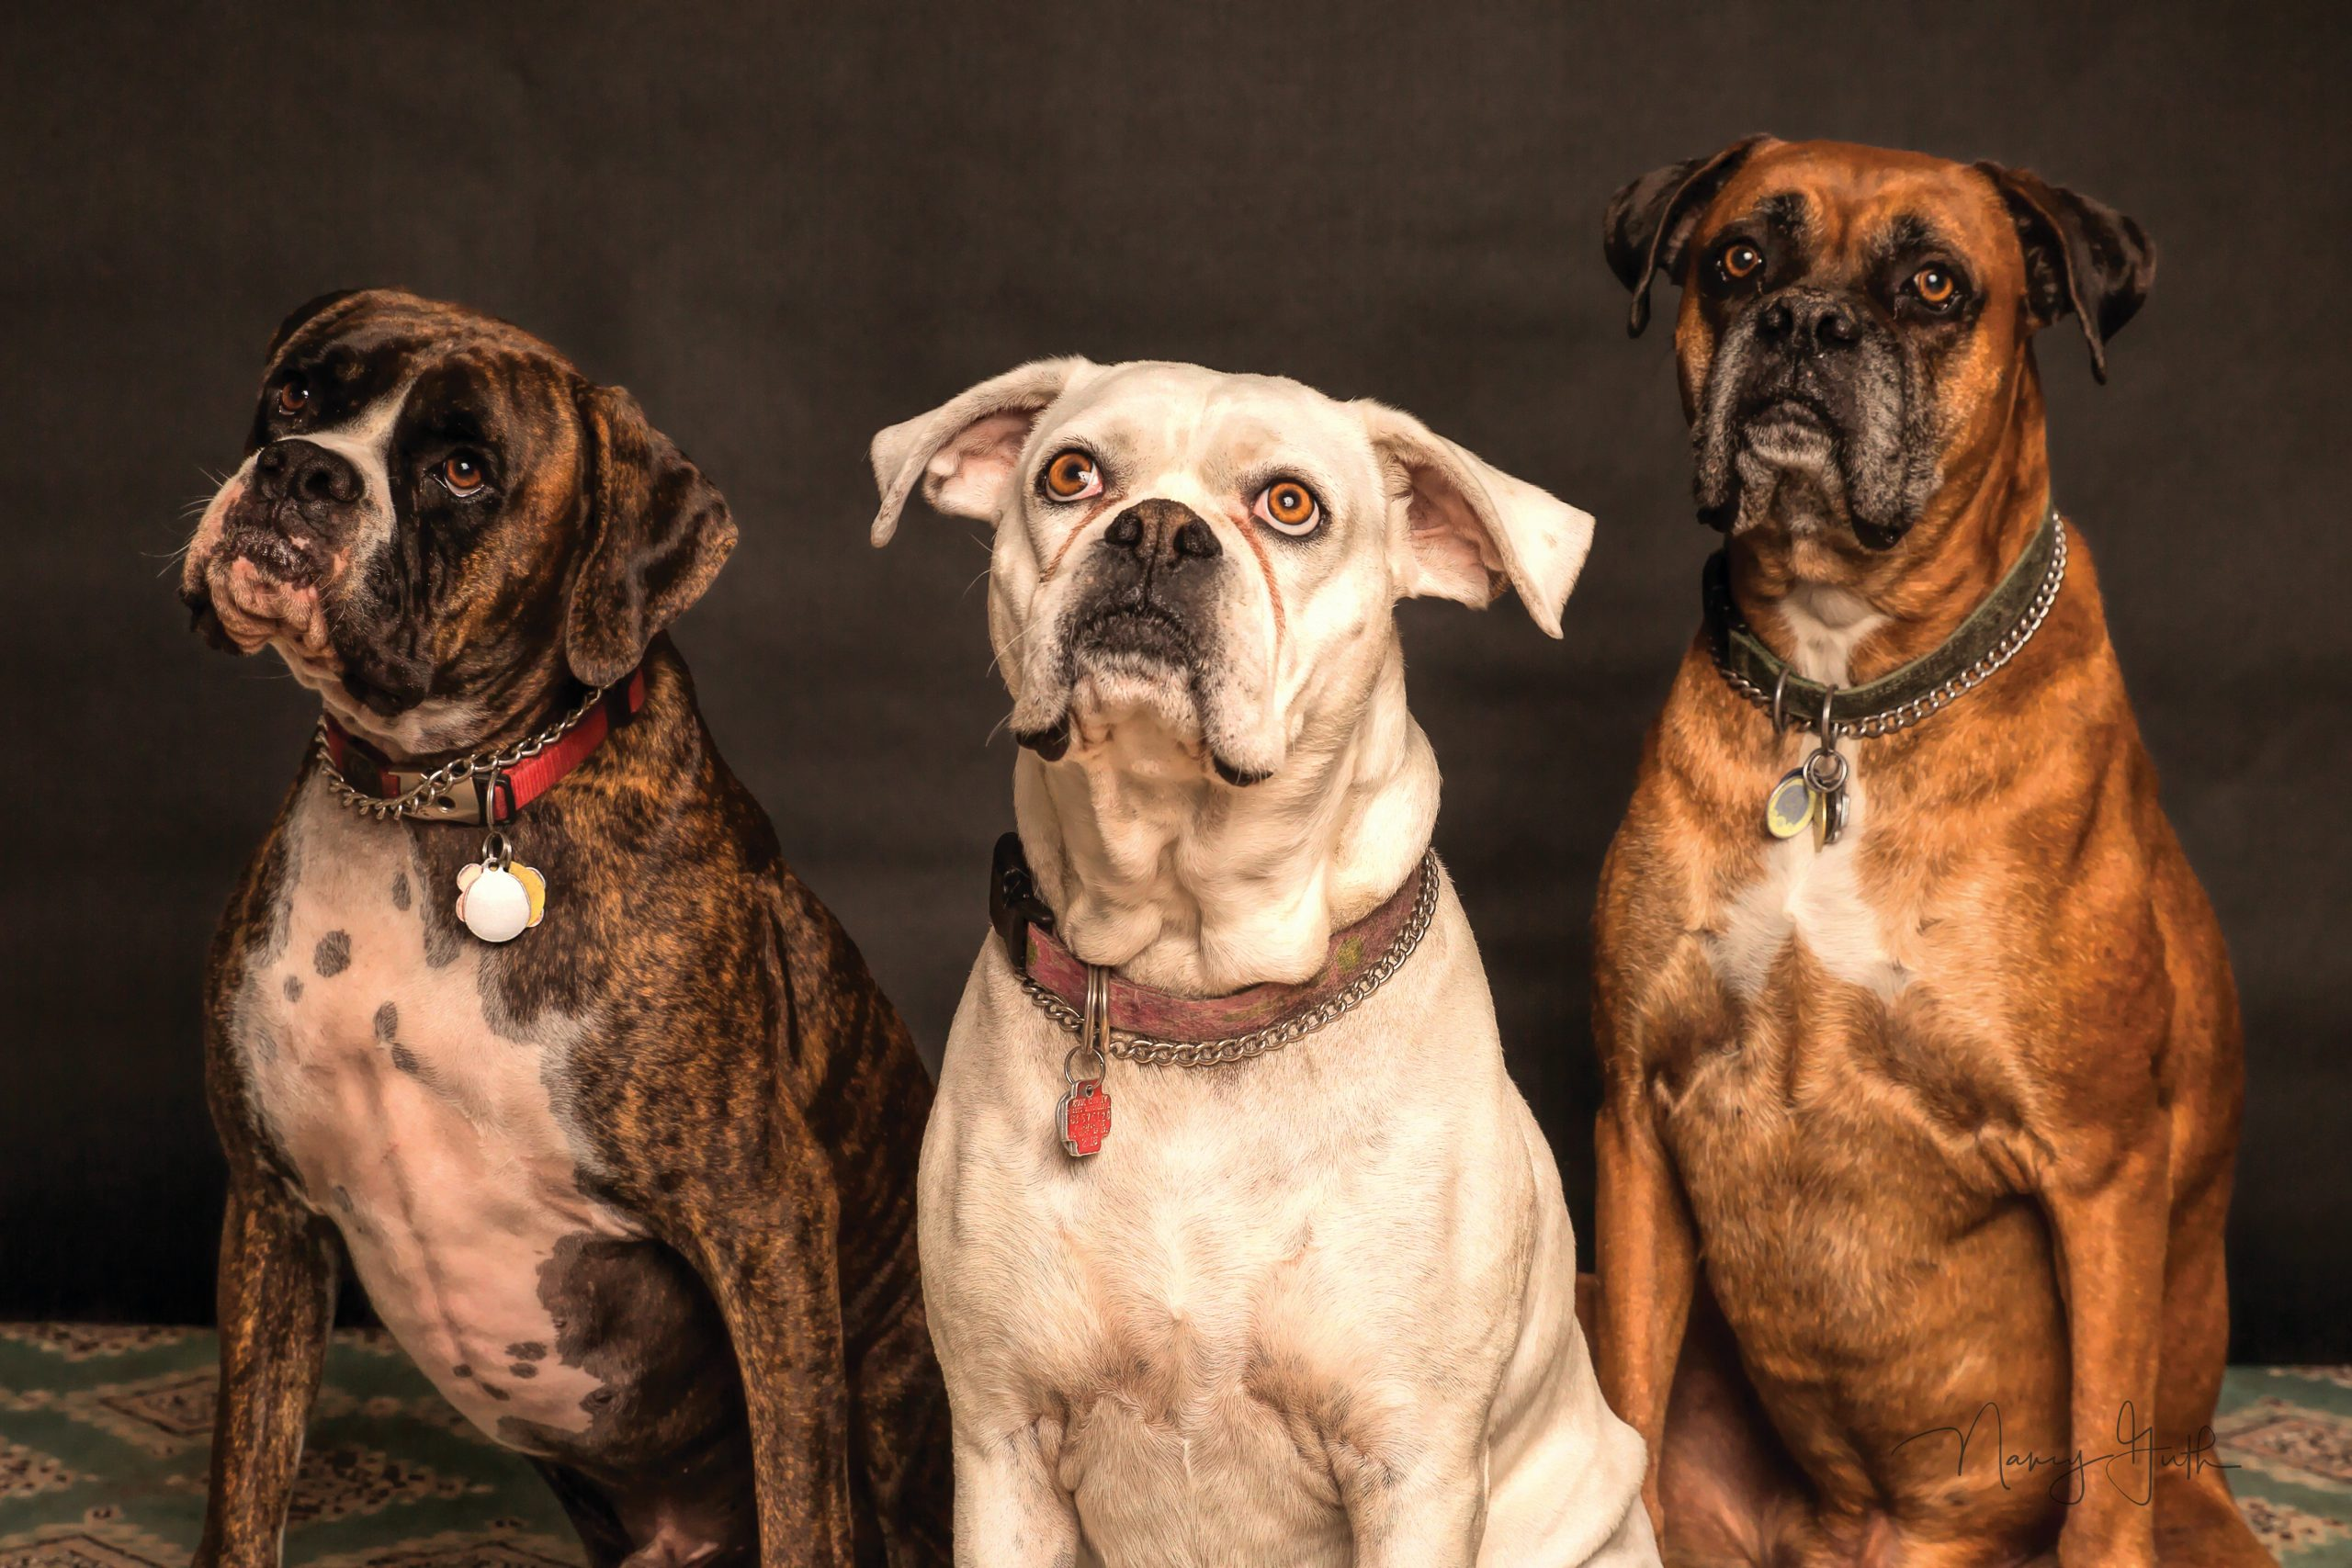 3 dogs looking up